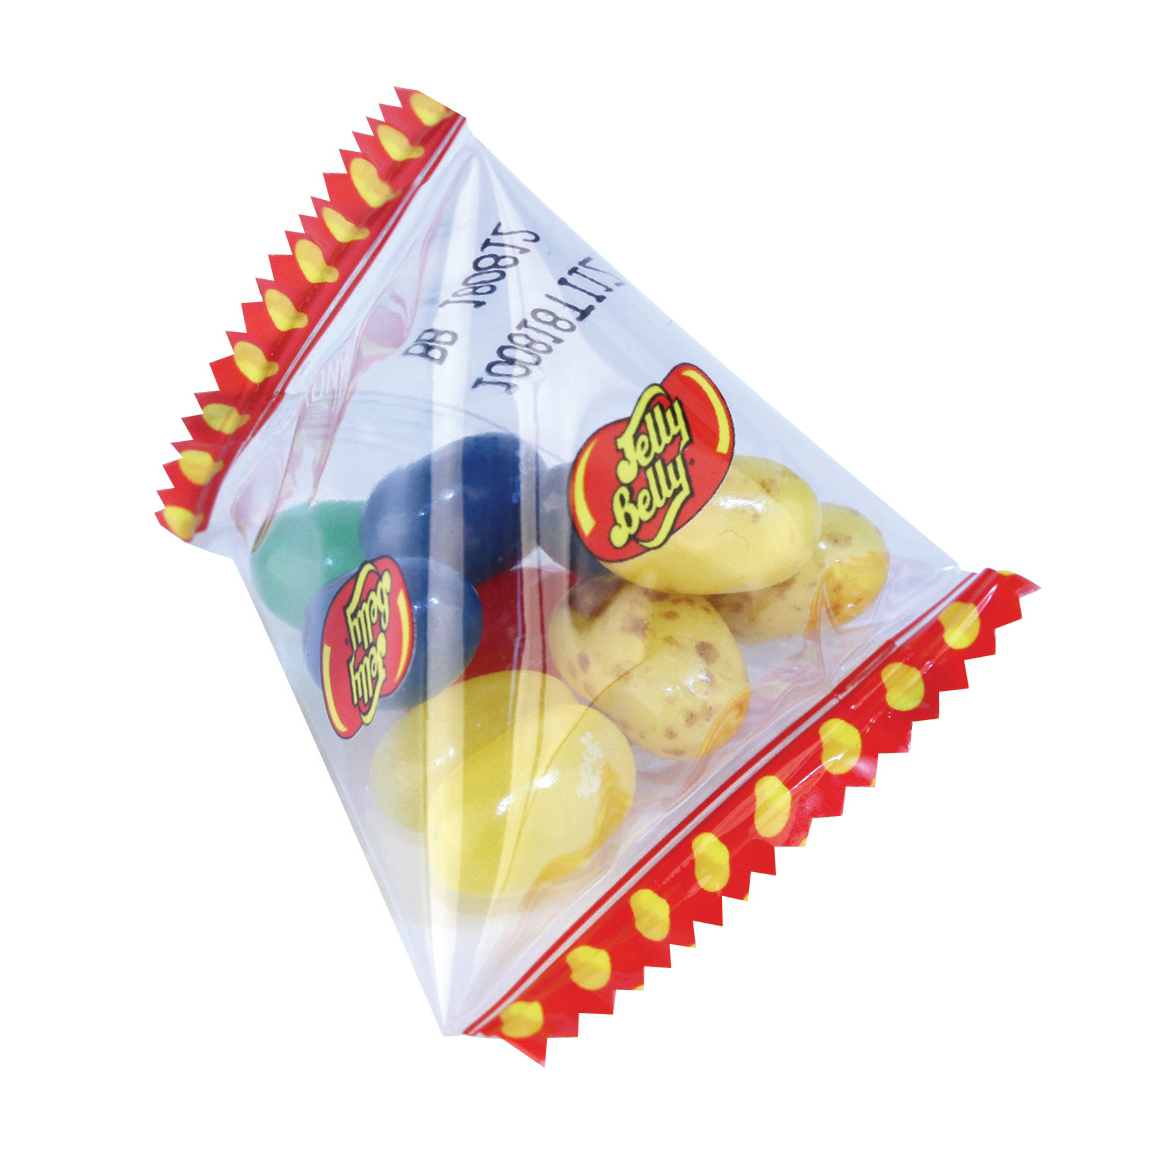 Jelly Belly Jelly Bean Pyramids Assorted Flavours 10g Pack 300